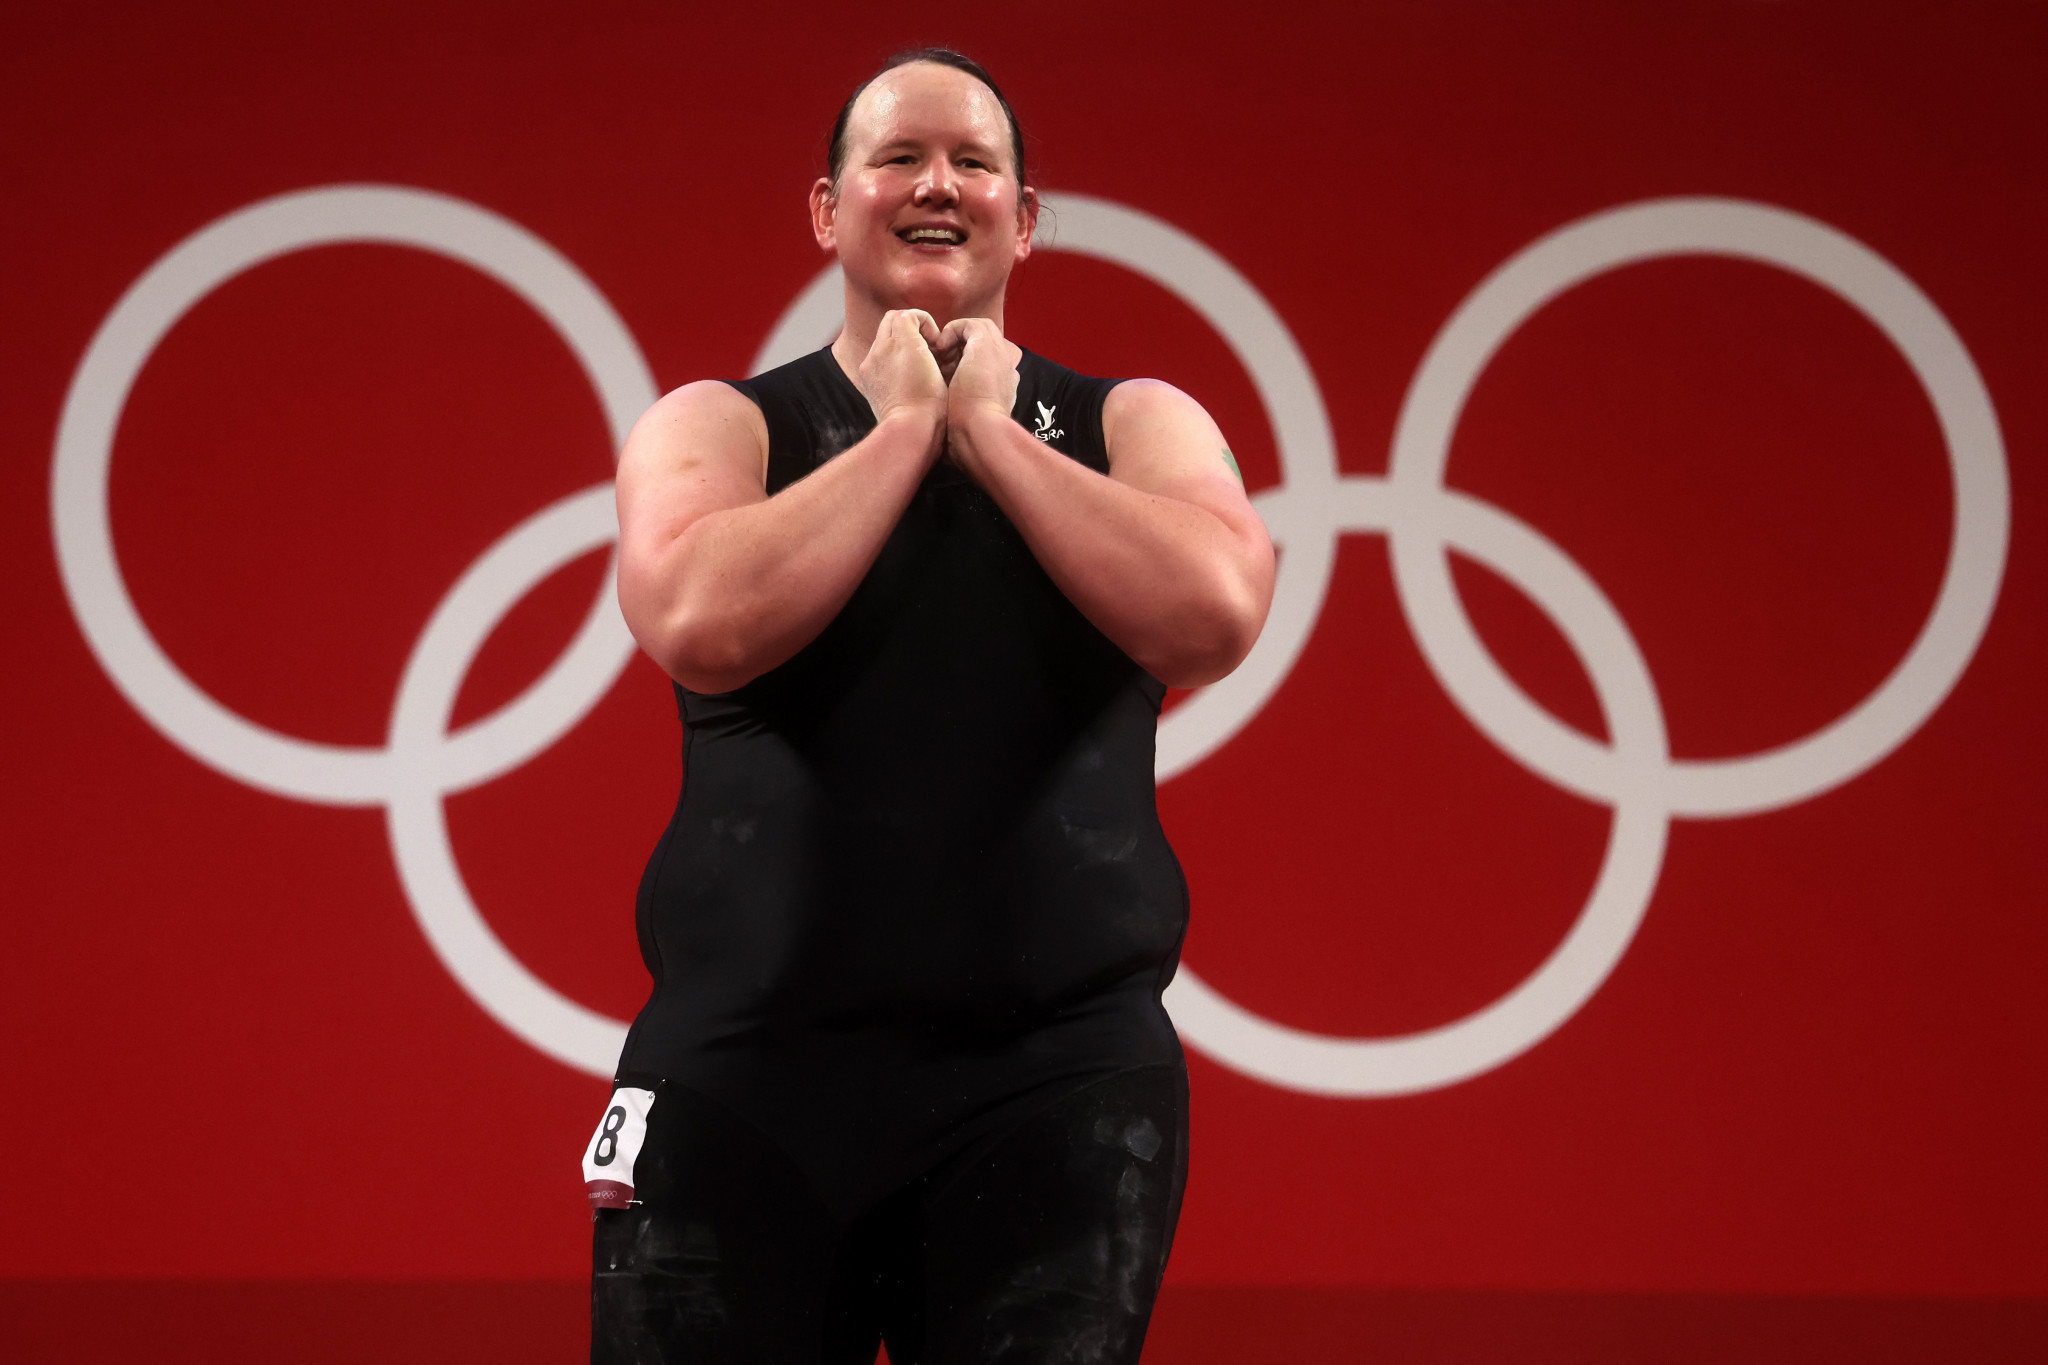 Laurel Hubbard thanked the IOC, IWF and the NZOC for their support ©Getty Images